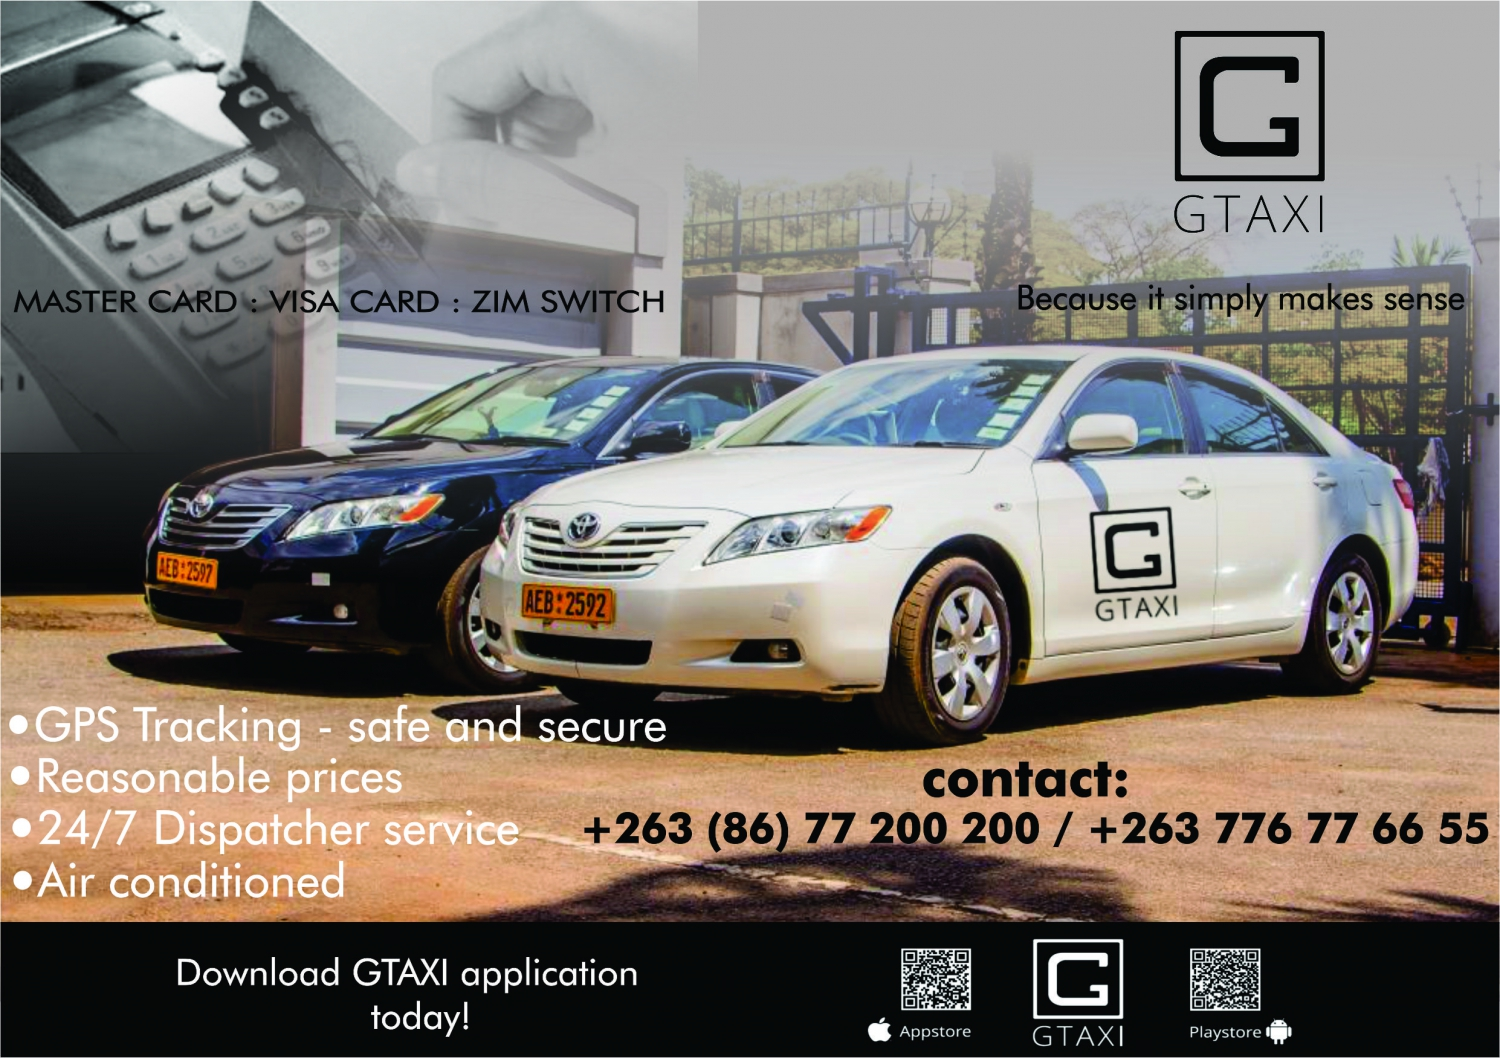 GTAXI